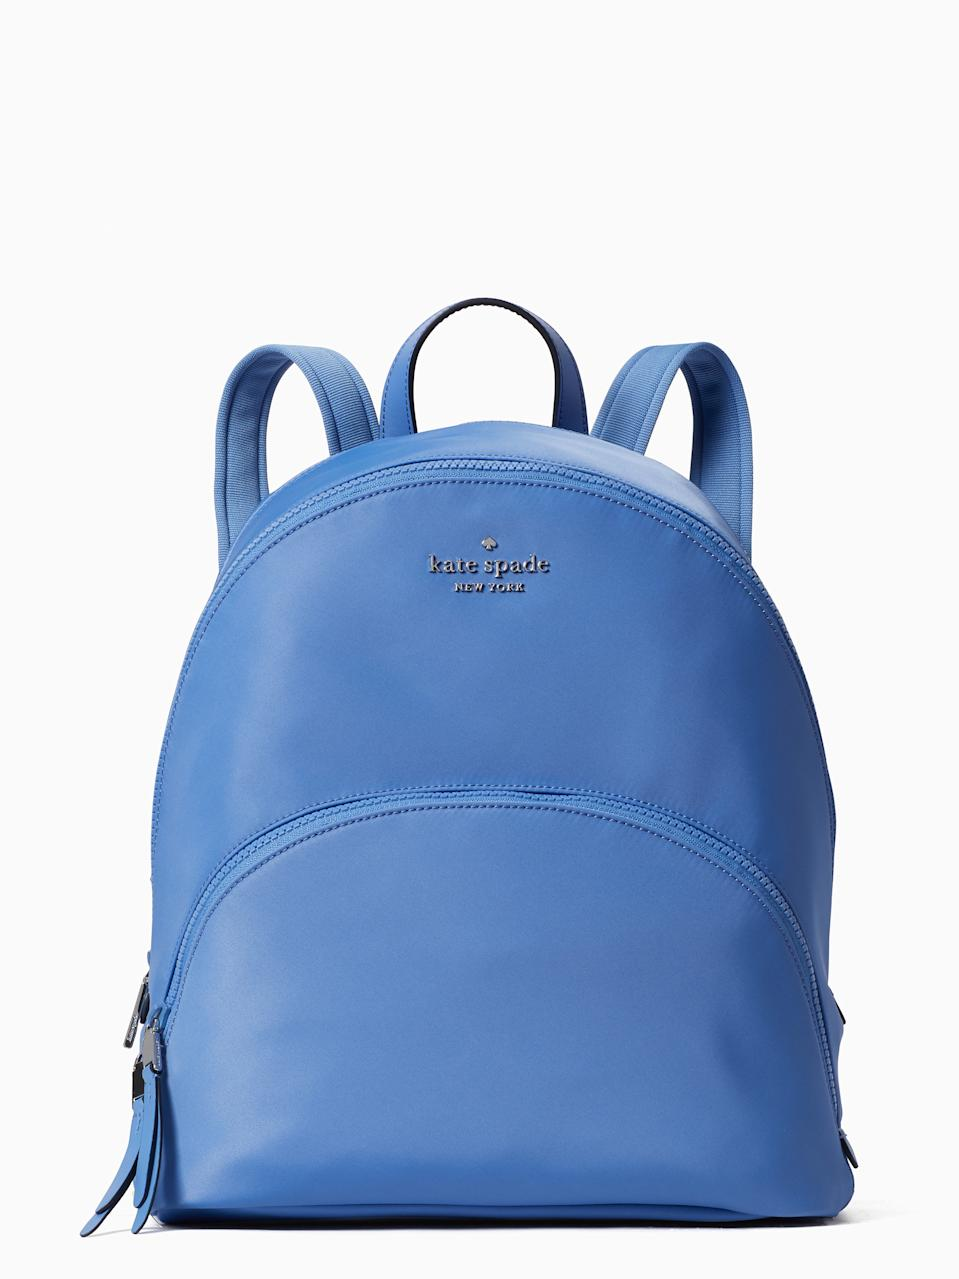 Karissa Nylon Large Backpack - $109 (originally $299)